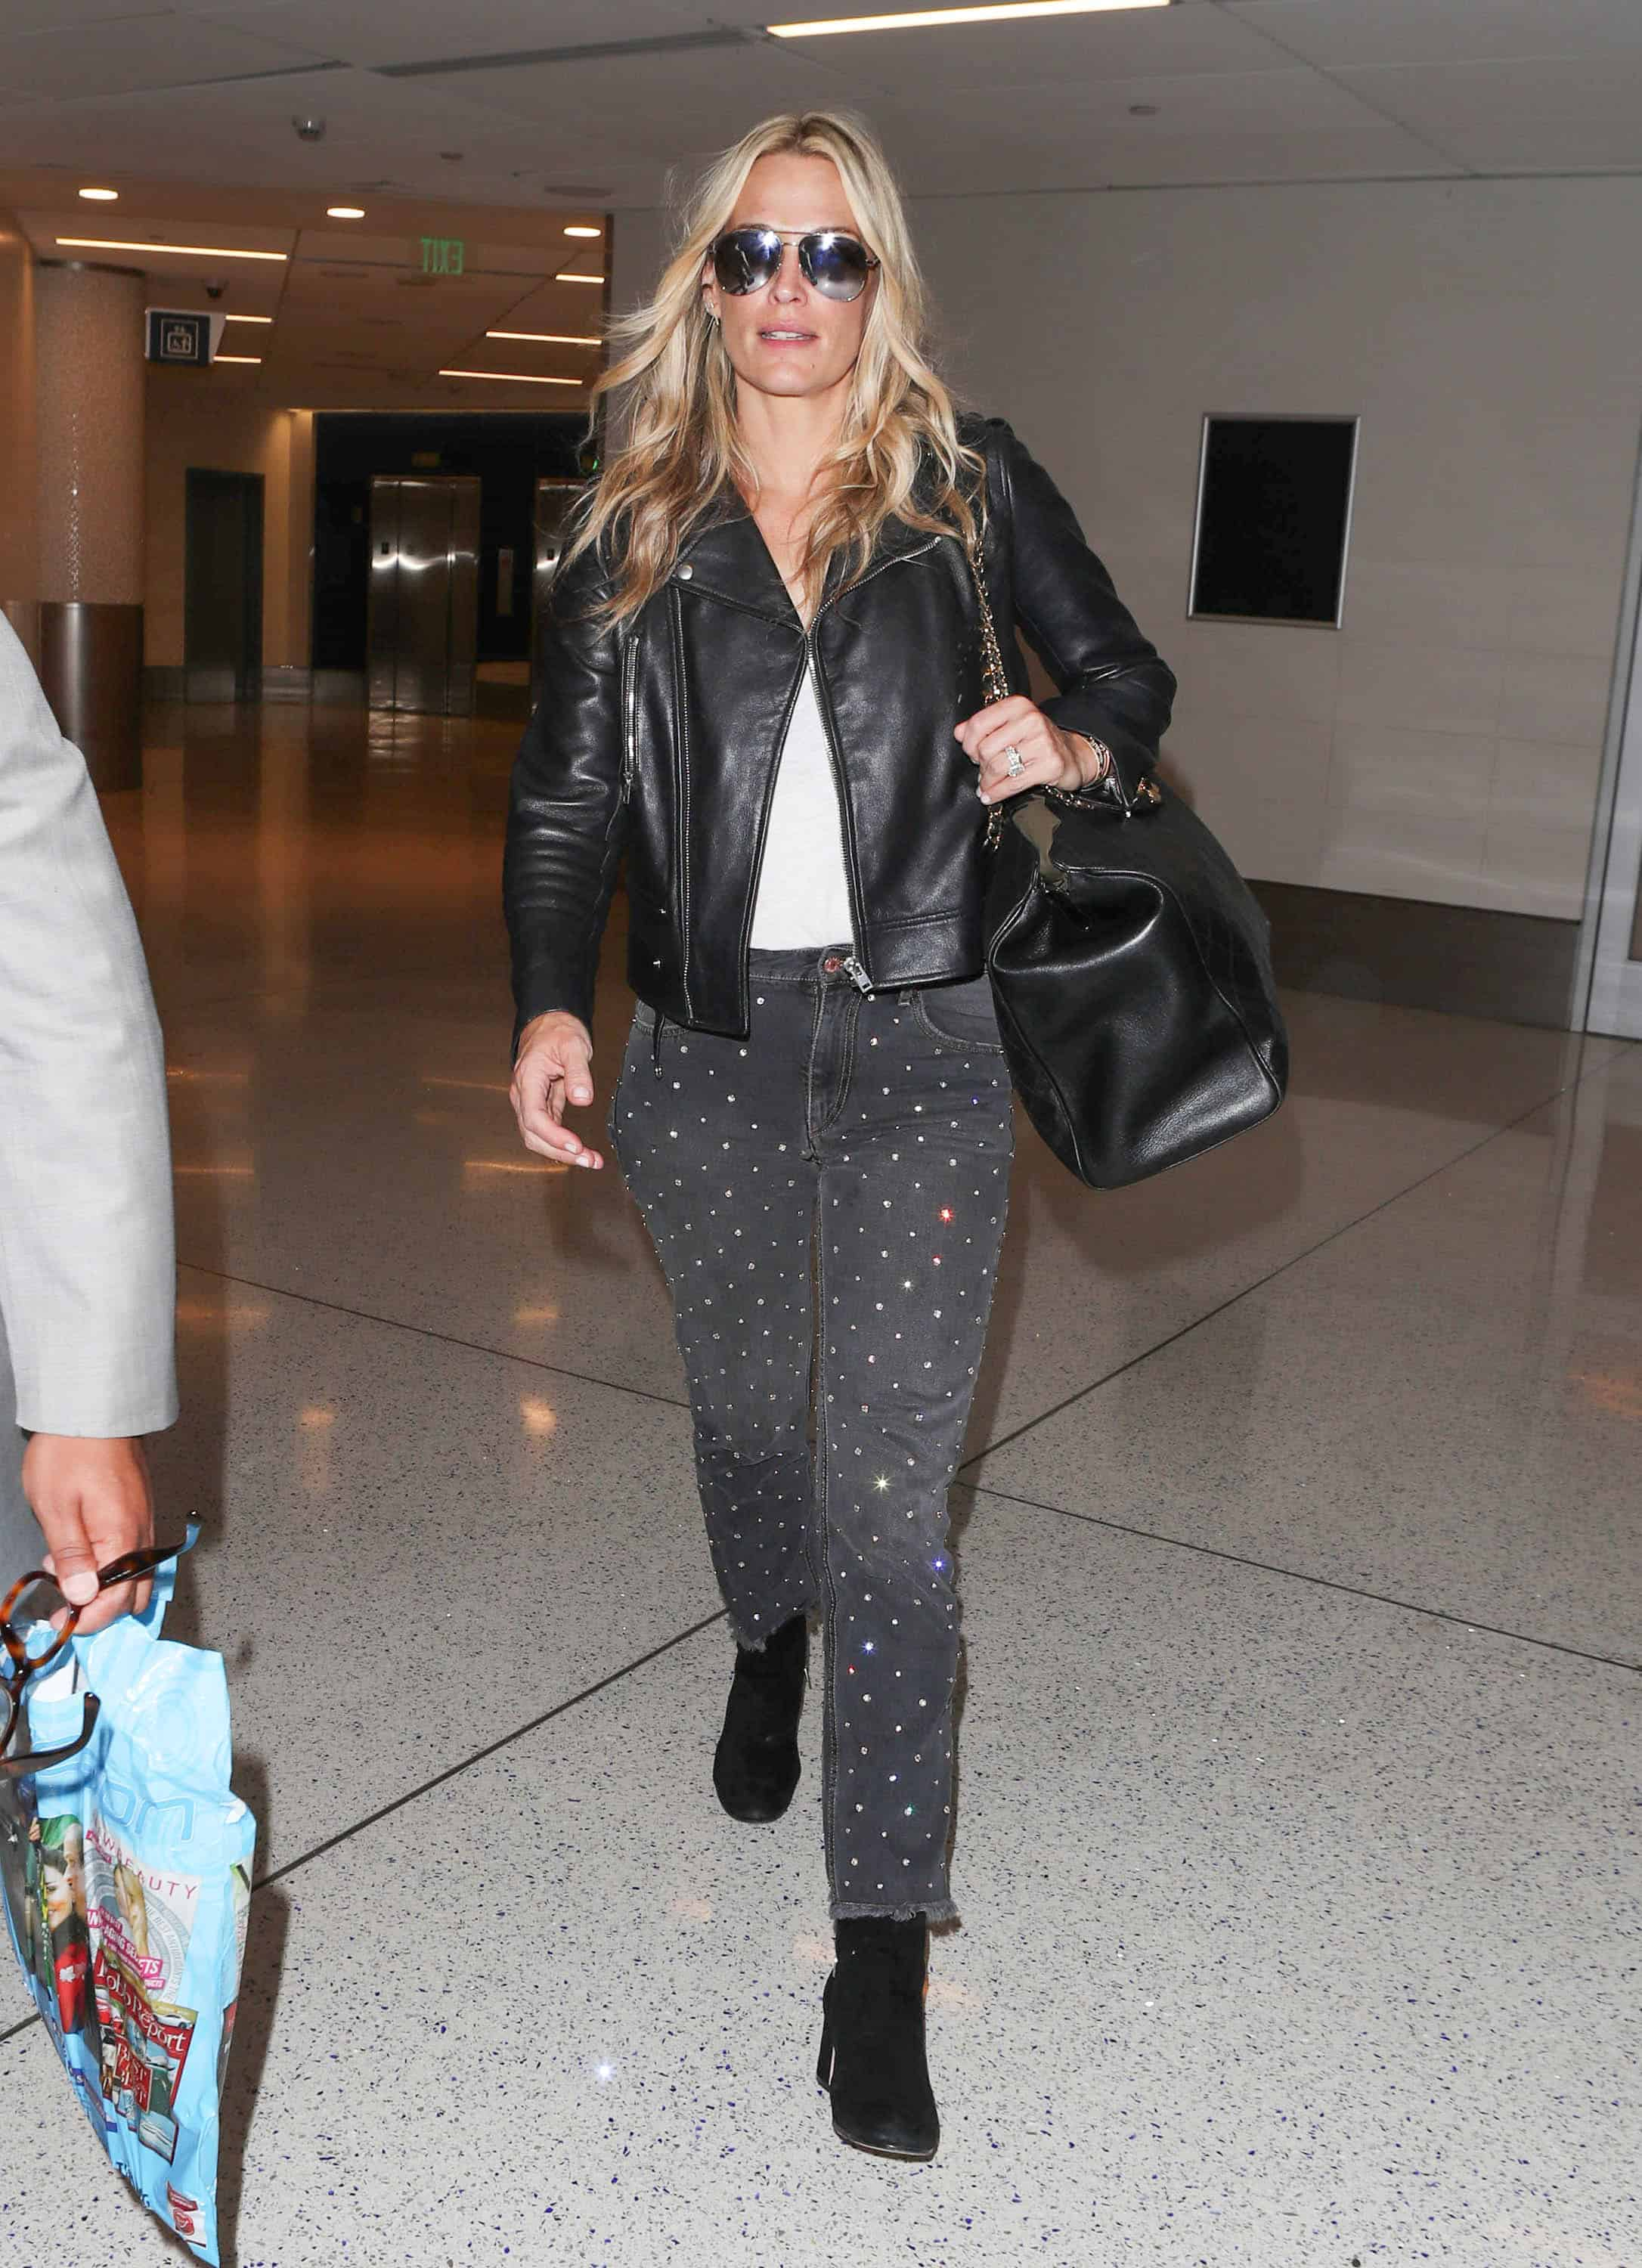 Molly Sims Rhinestone Jeans Look for Less